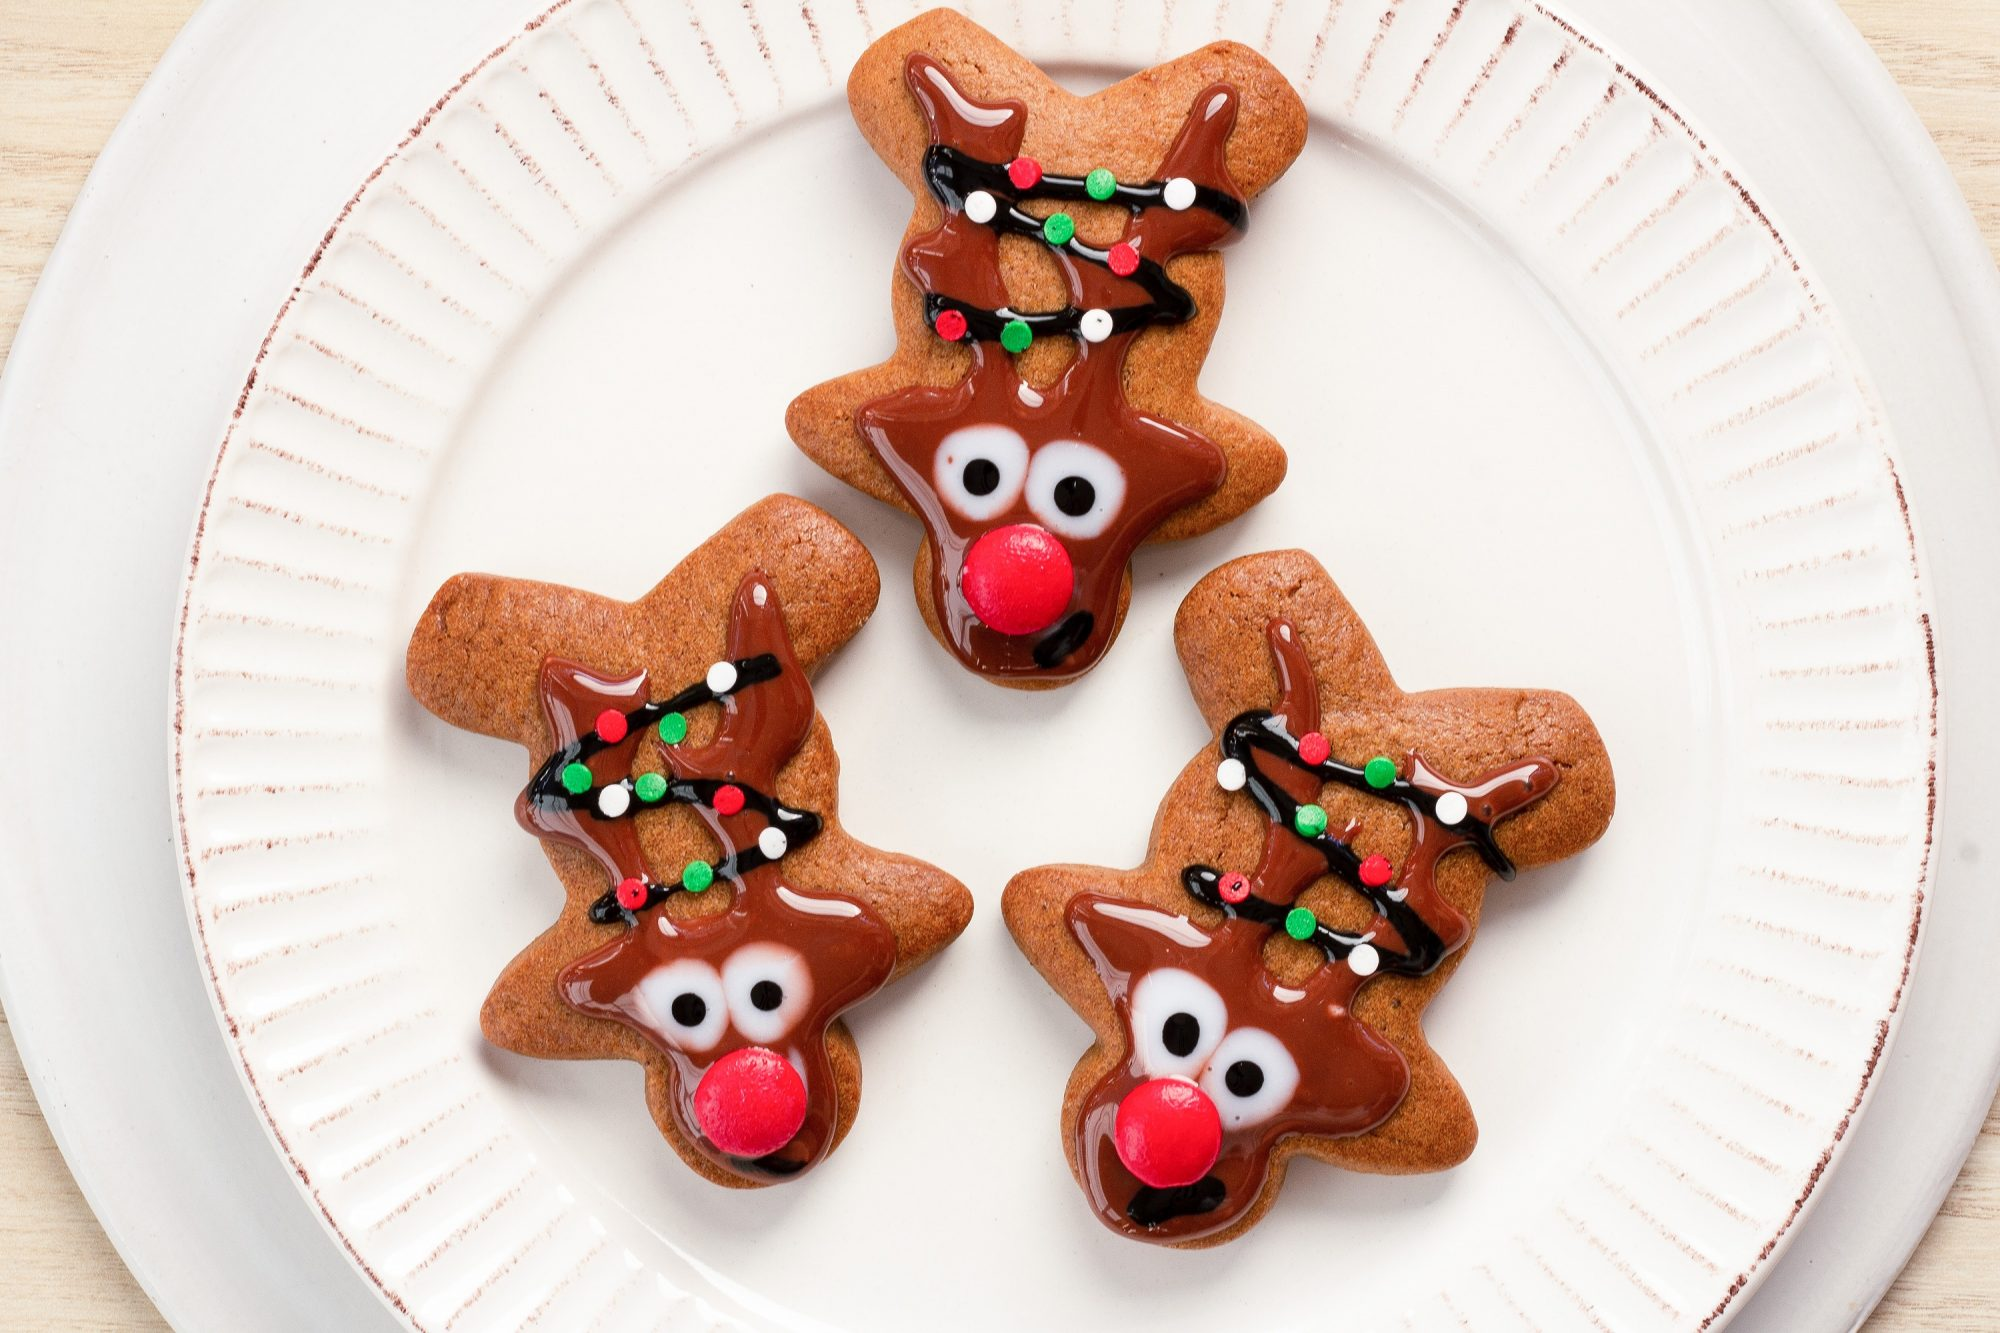 How To Decorate Gingerbread Reindeer Allrecipes